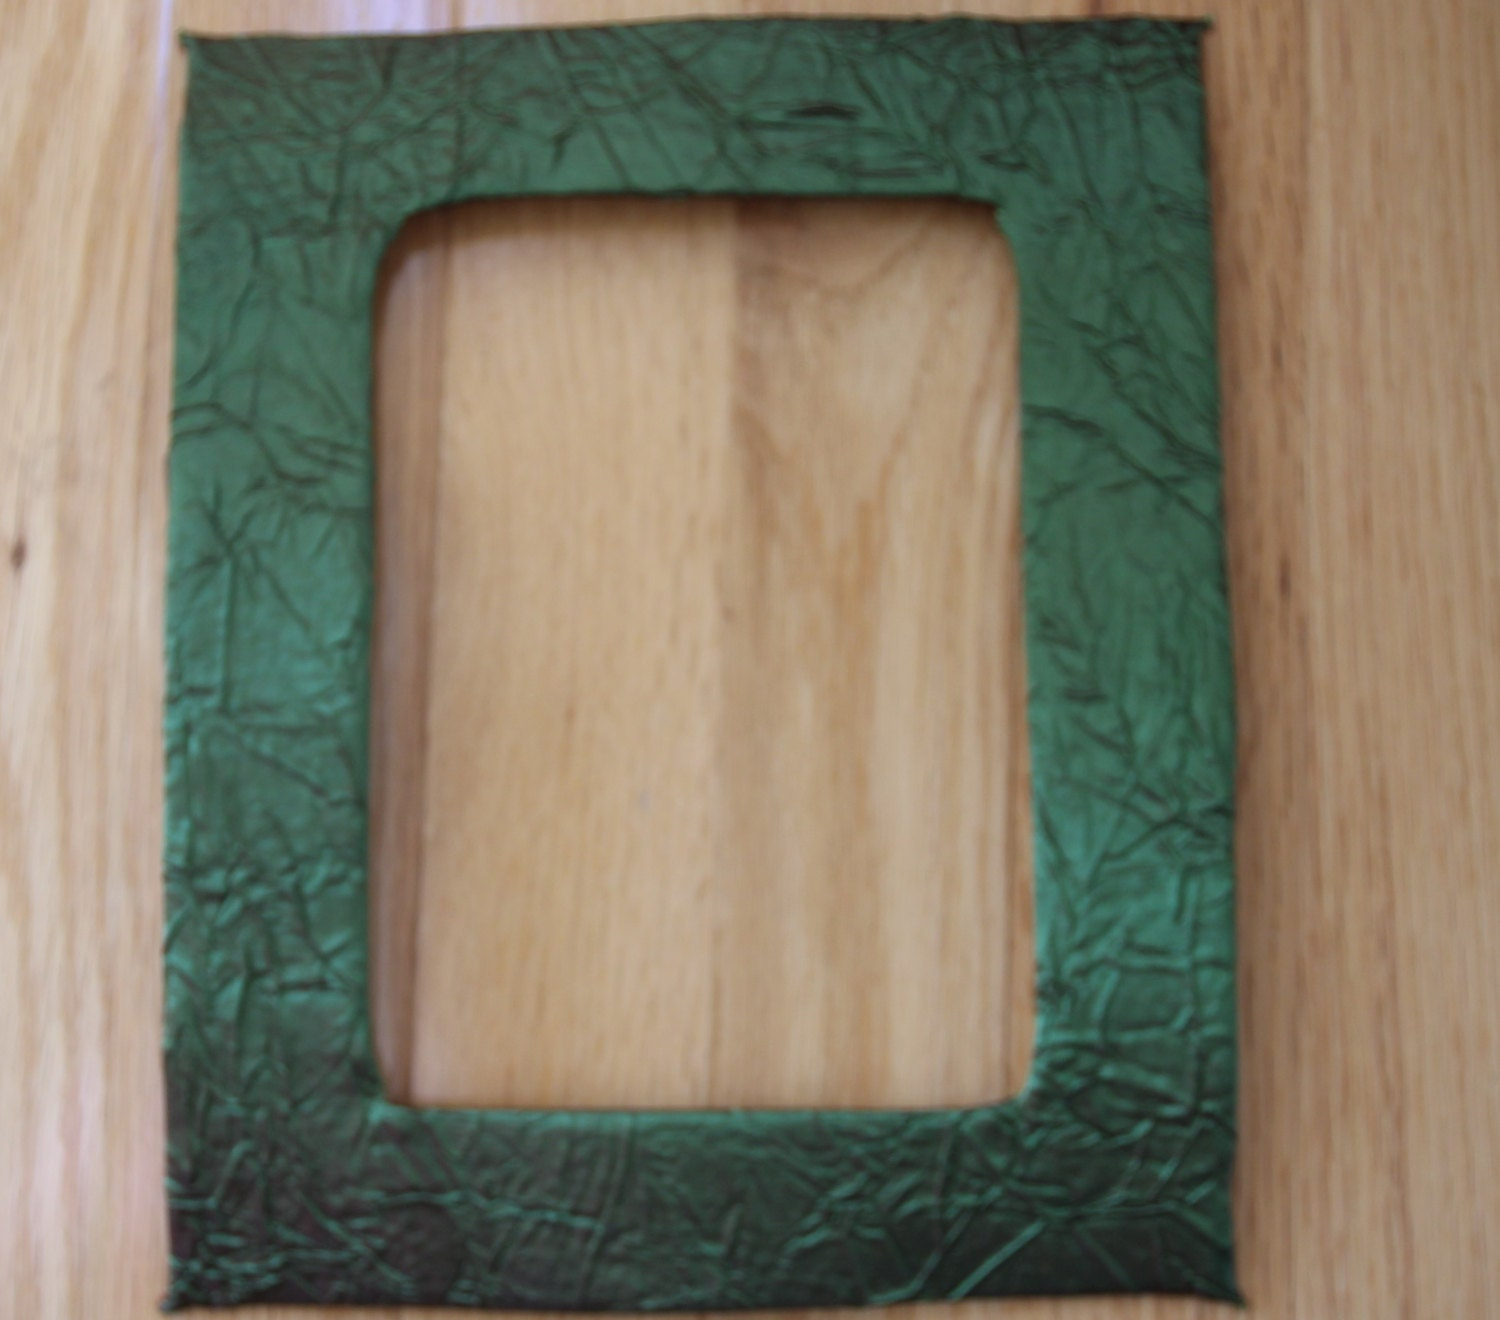 8 Quot X 10 Quot Picture Mat In Crinkled Green Silk With A 5 Quot X 7